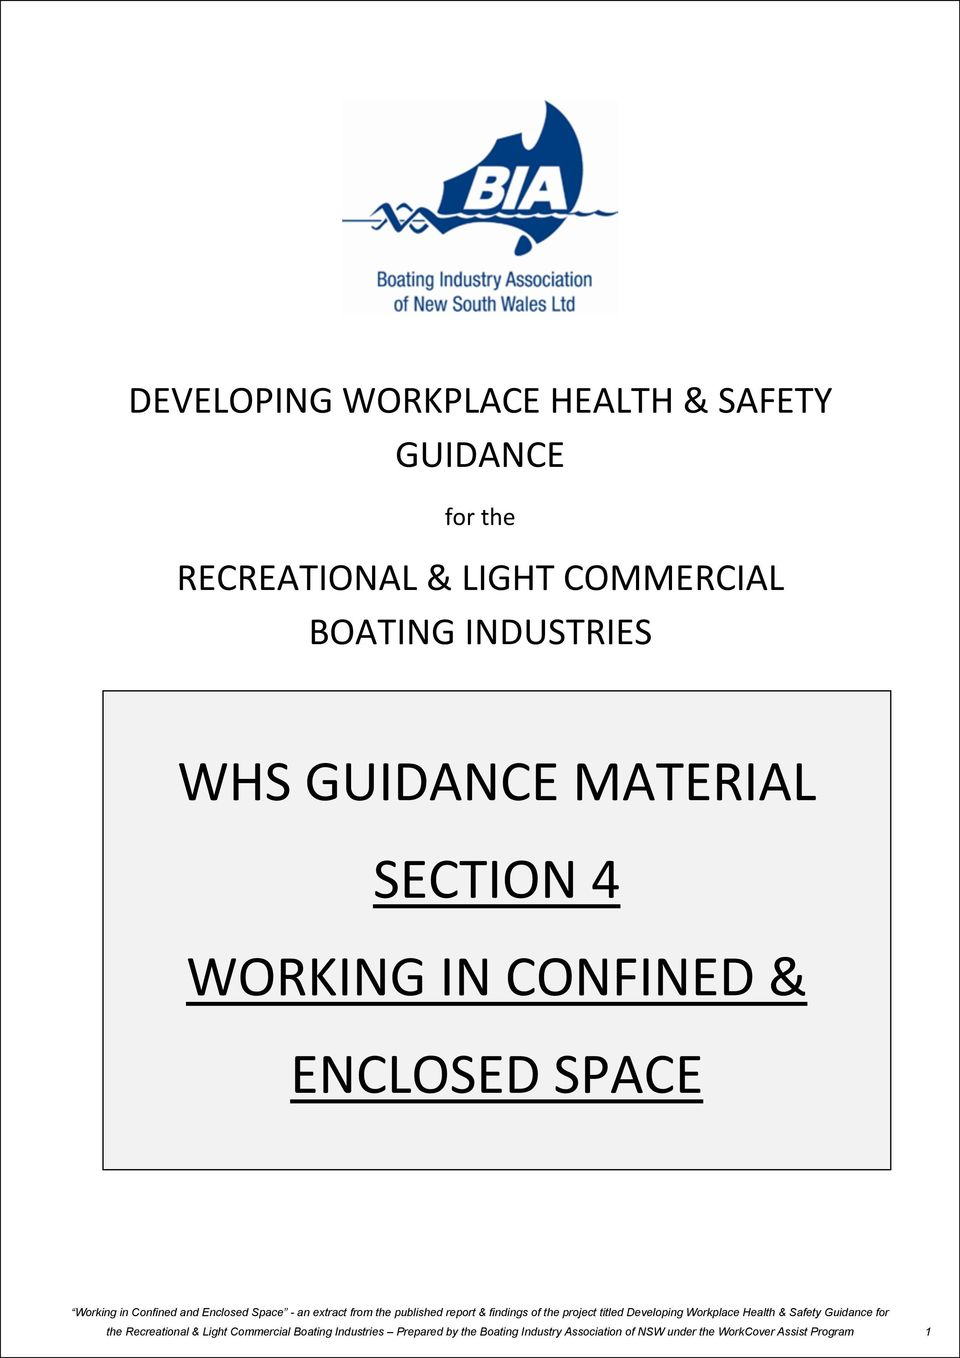 INDUSTRIES WHS GUIDANCE MATERIAL WHS GUIDANCE